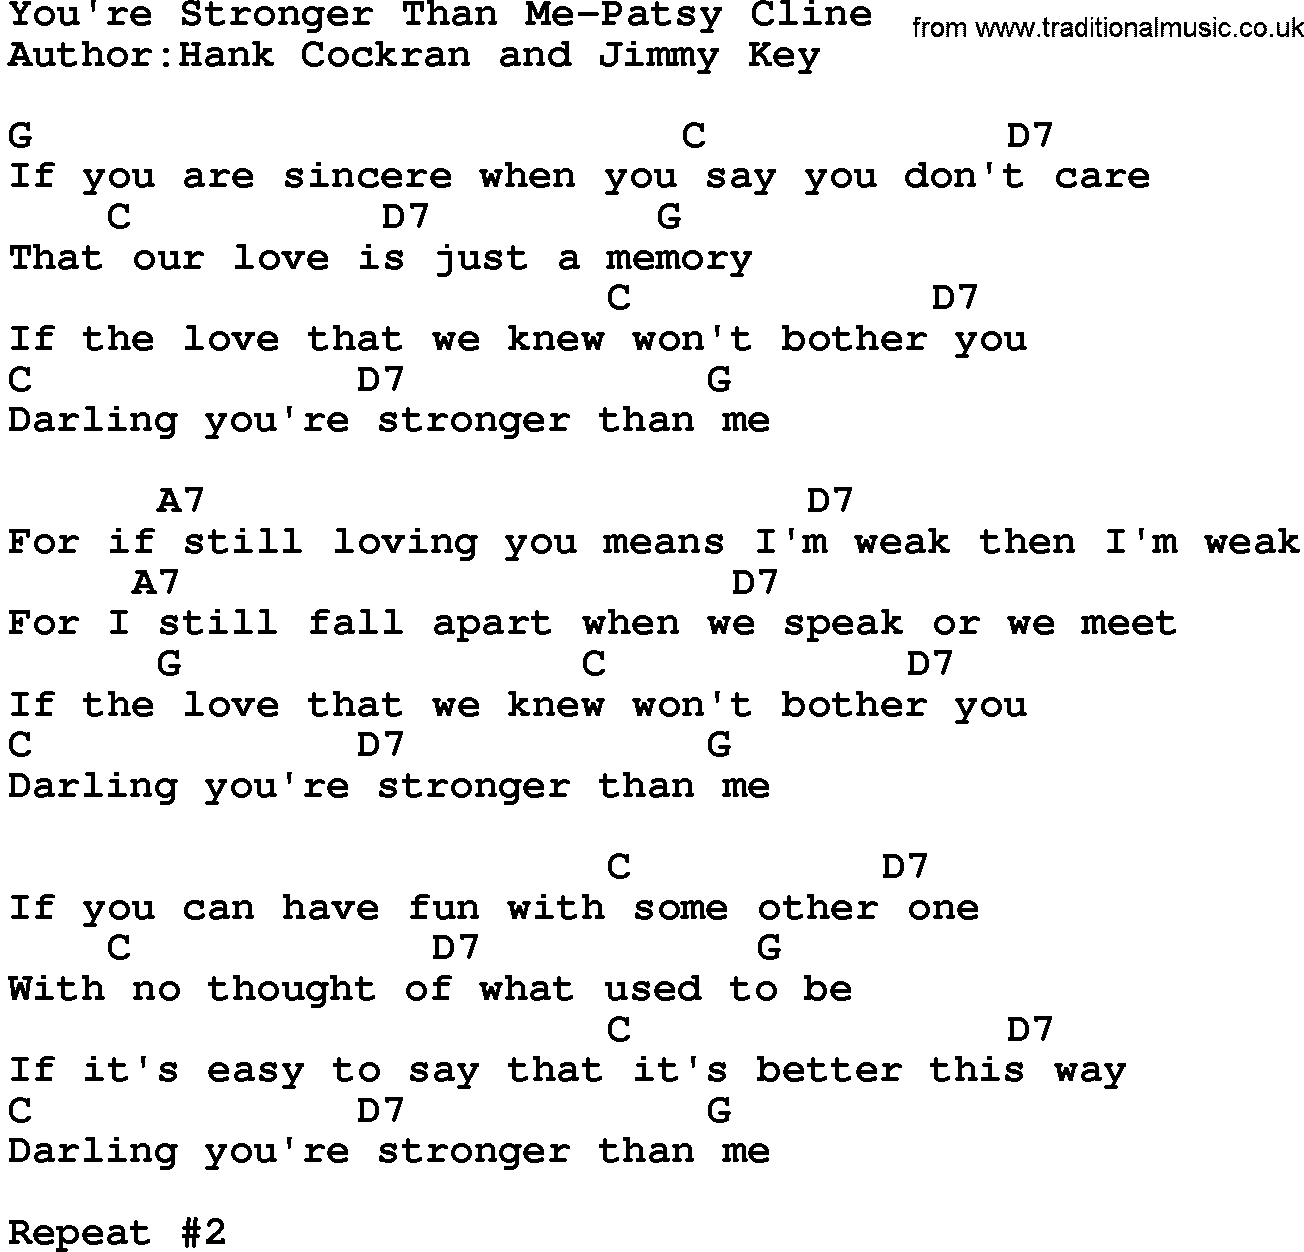 Country musicyoure stronger than me patsy cline lyrics and chords hexwebz Image collections